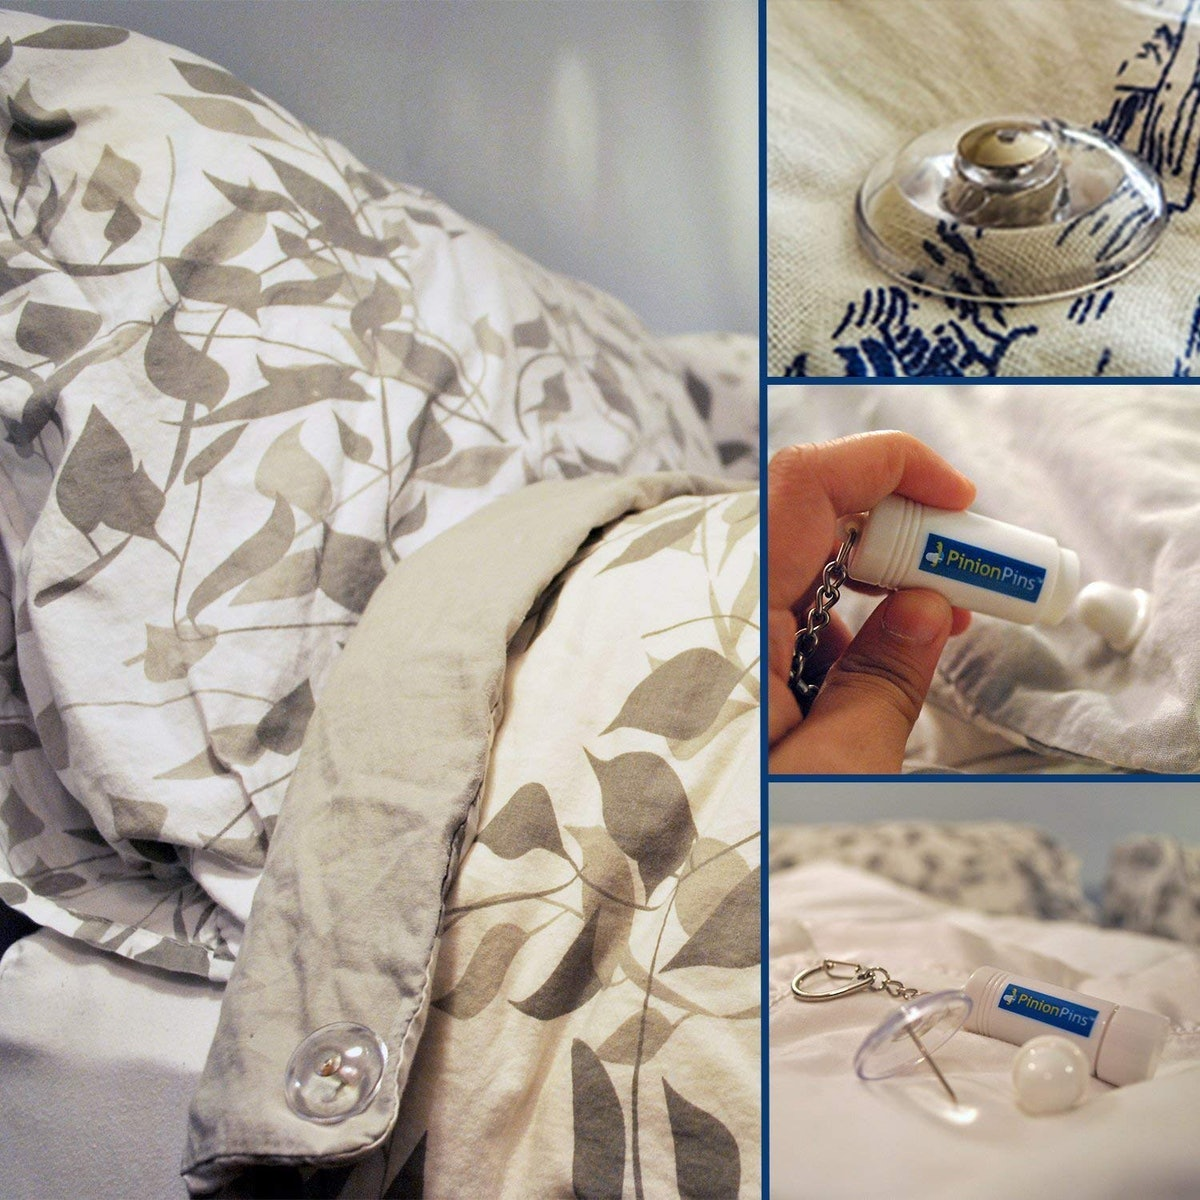 Pinion Pins Clear Magnetic Duvet Clips (8-Pack)